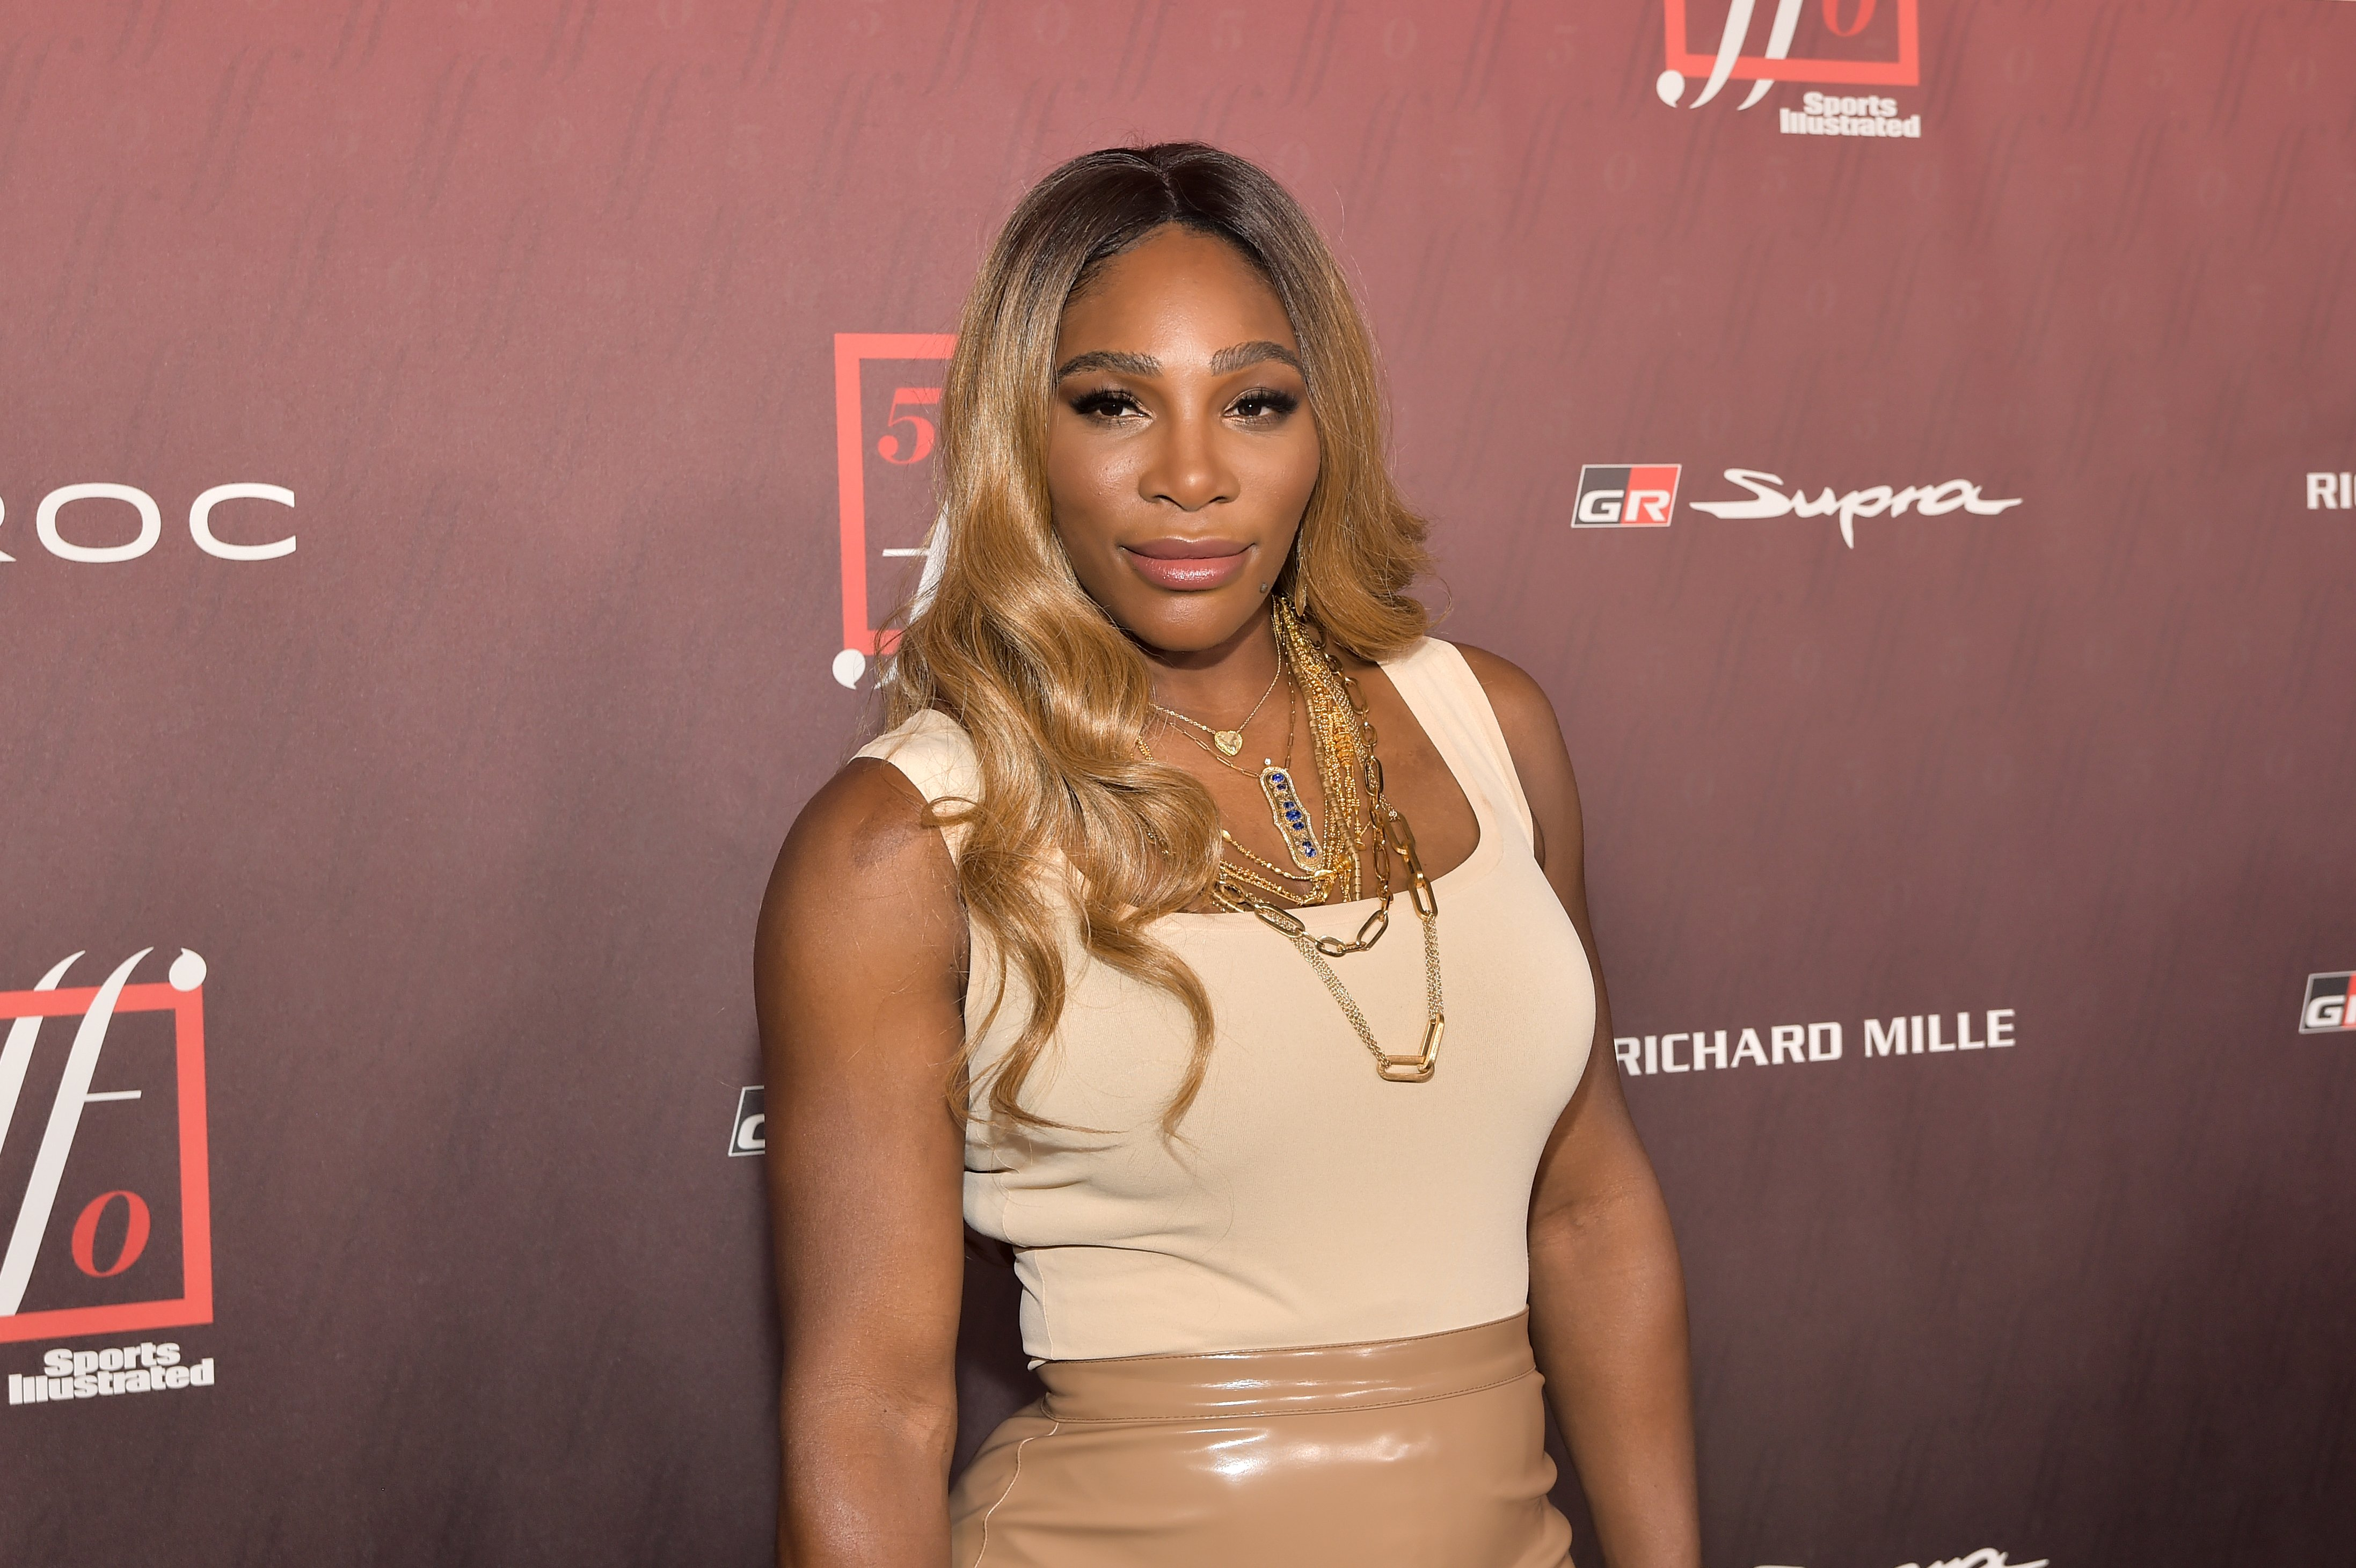 Serena Williams attending the launch of the Sports Illustrated Fashionable 50 issue at the Sunset Room on July 18, 2019 in Los Angeles. | Source: Getty Images